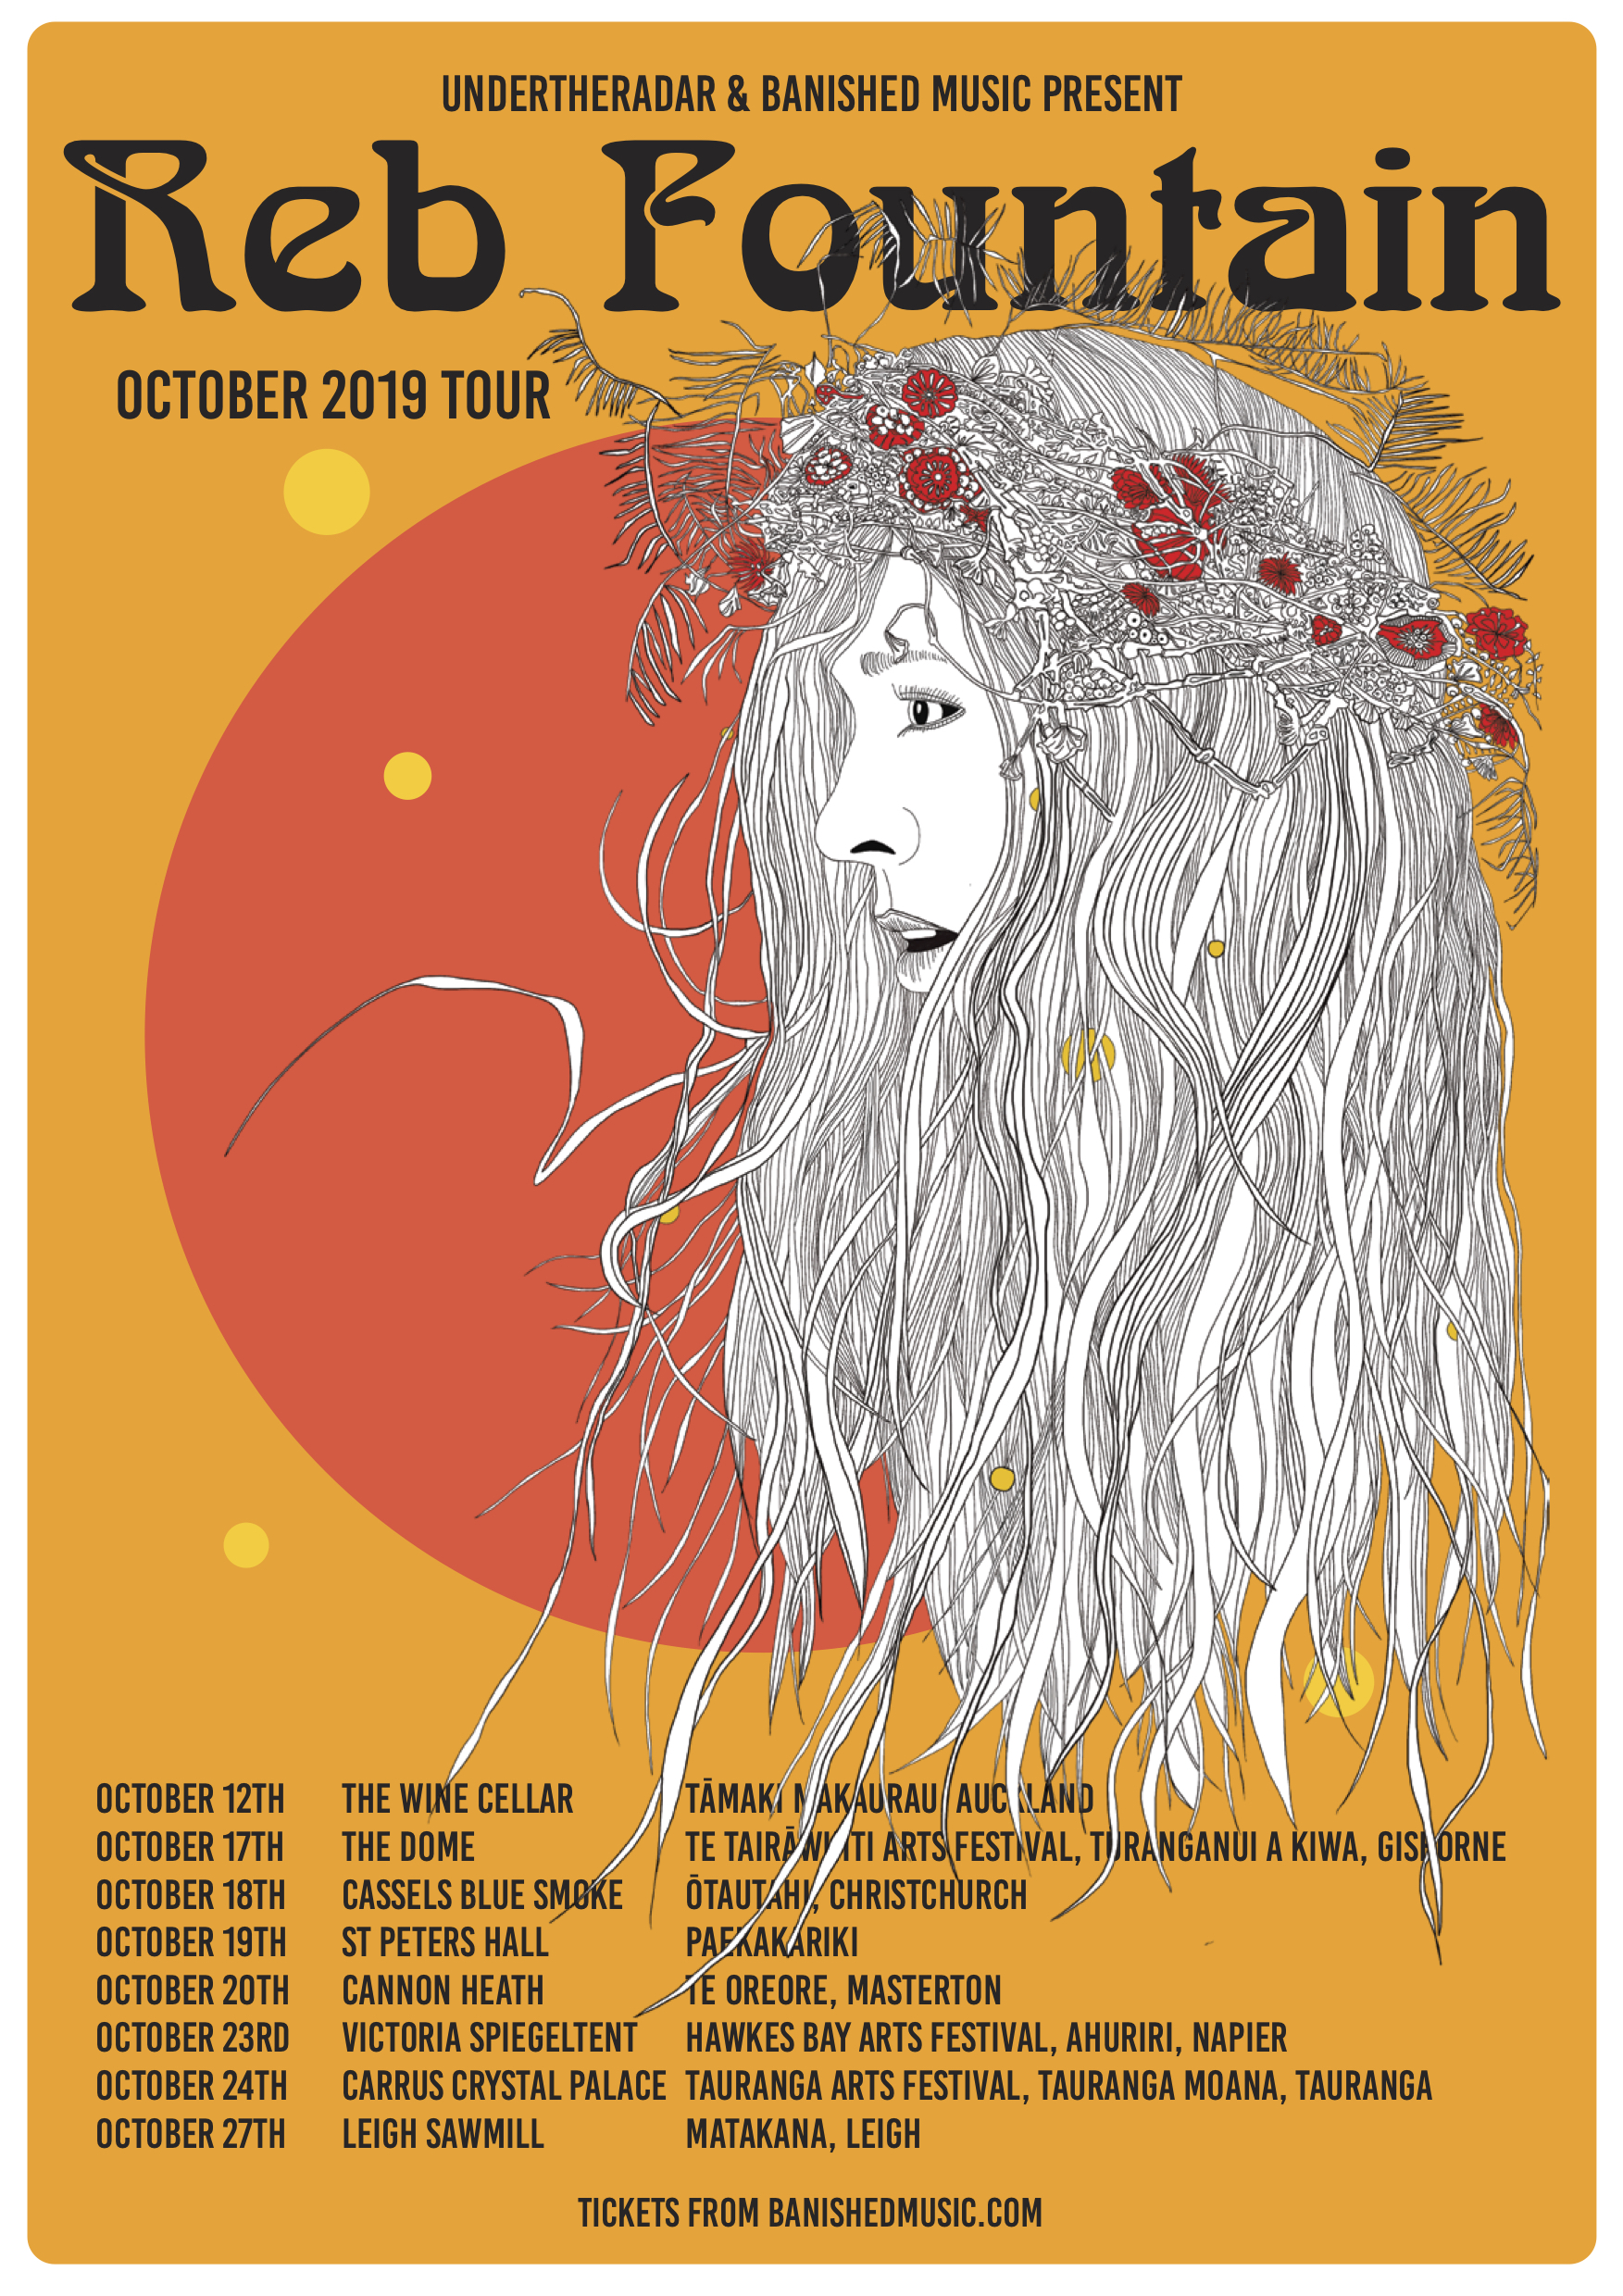 Reb Fountain October 2019 Tour Poster FINAL_A3 Digital Poster.jpg